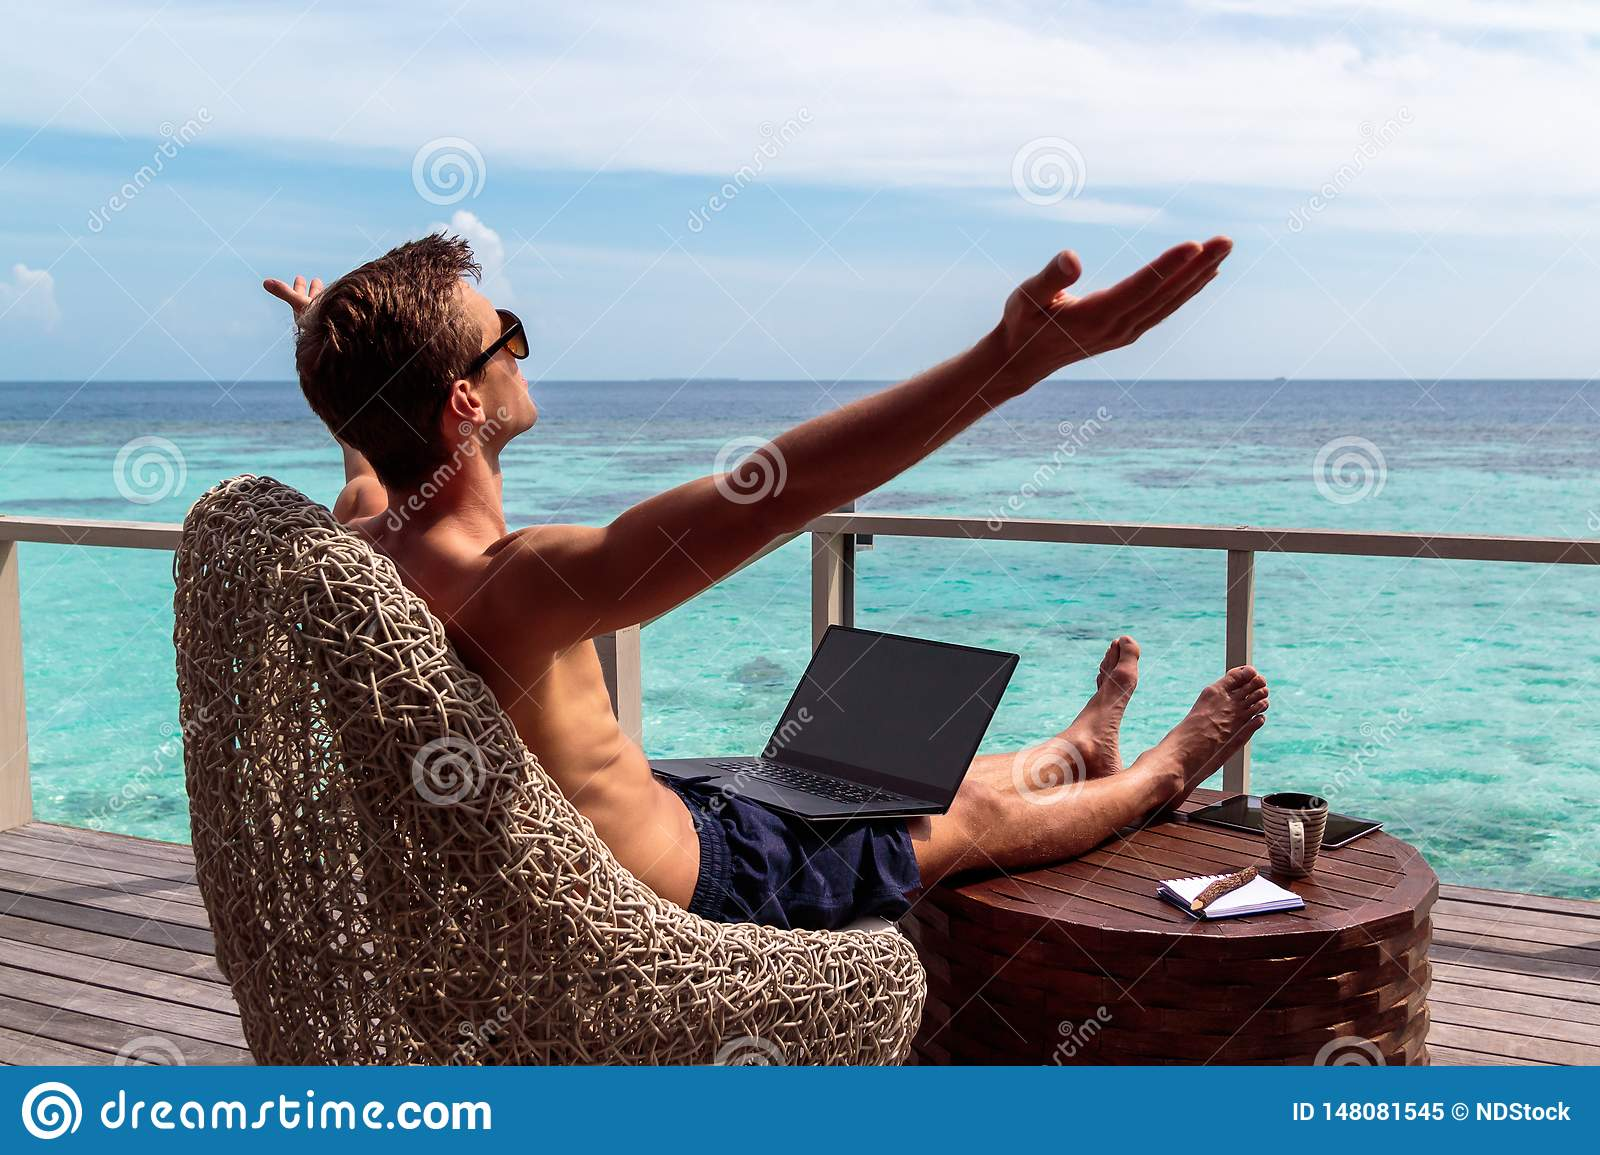 Young man in swimsuit working on a laptop in a tropical destination. arms raised, freedom concept